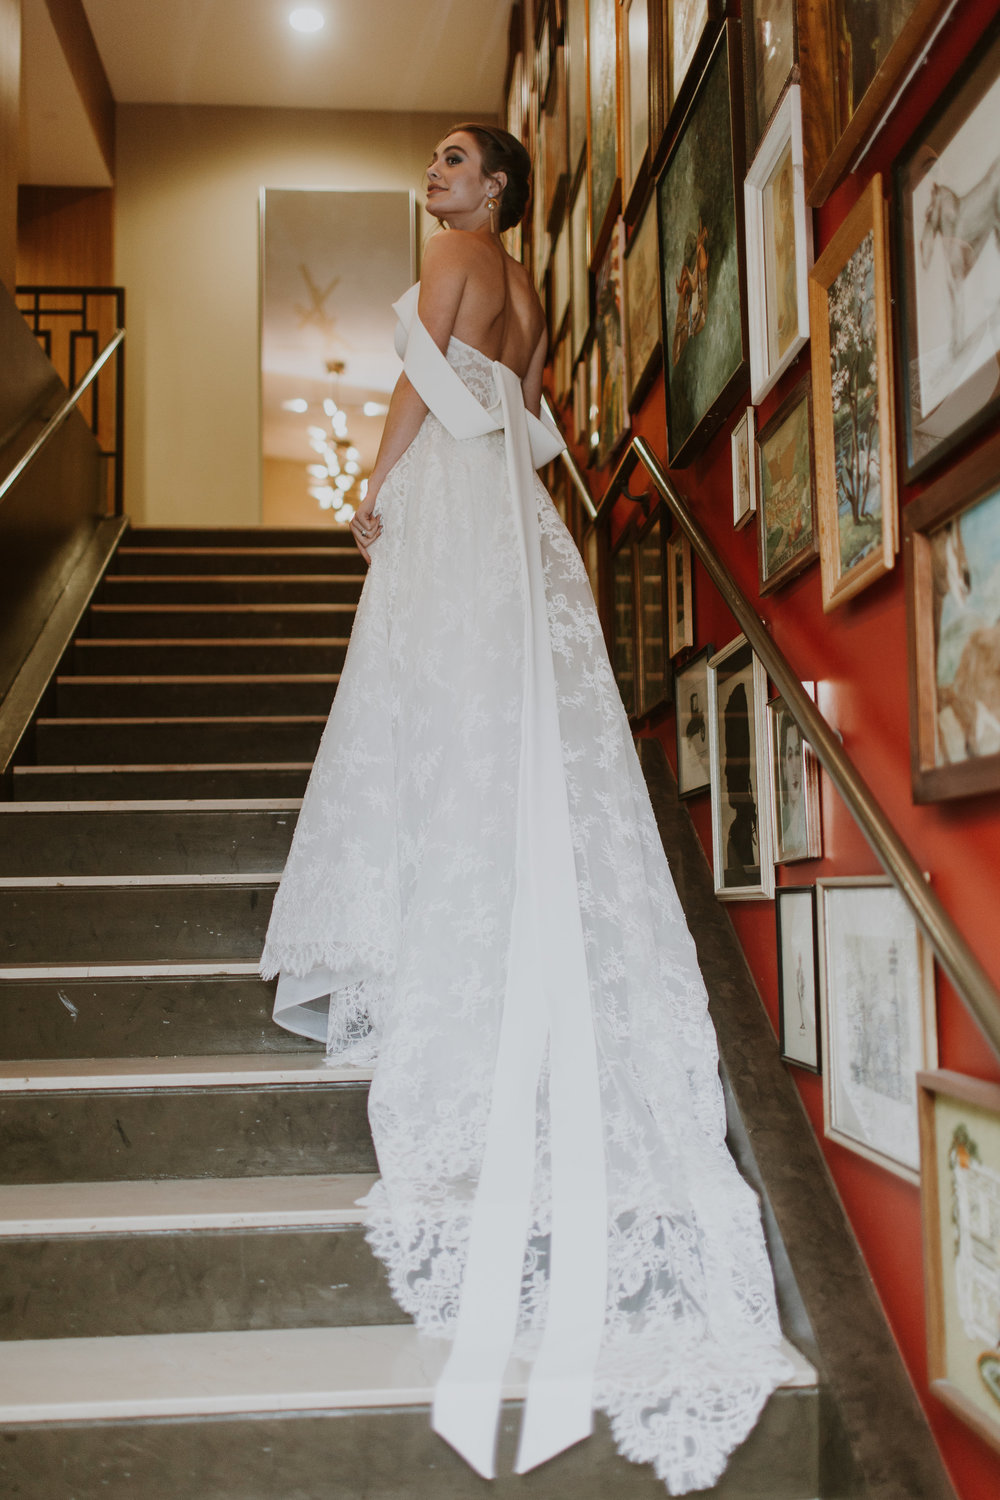 Lace Off the Shoulder Sultry Bridal Wedding Gown Gabrielle Daylor Photography